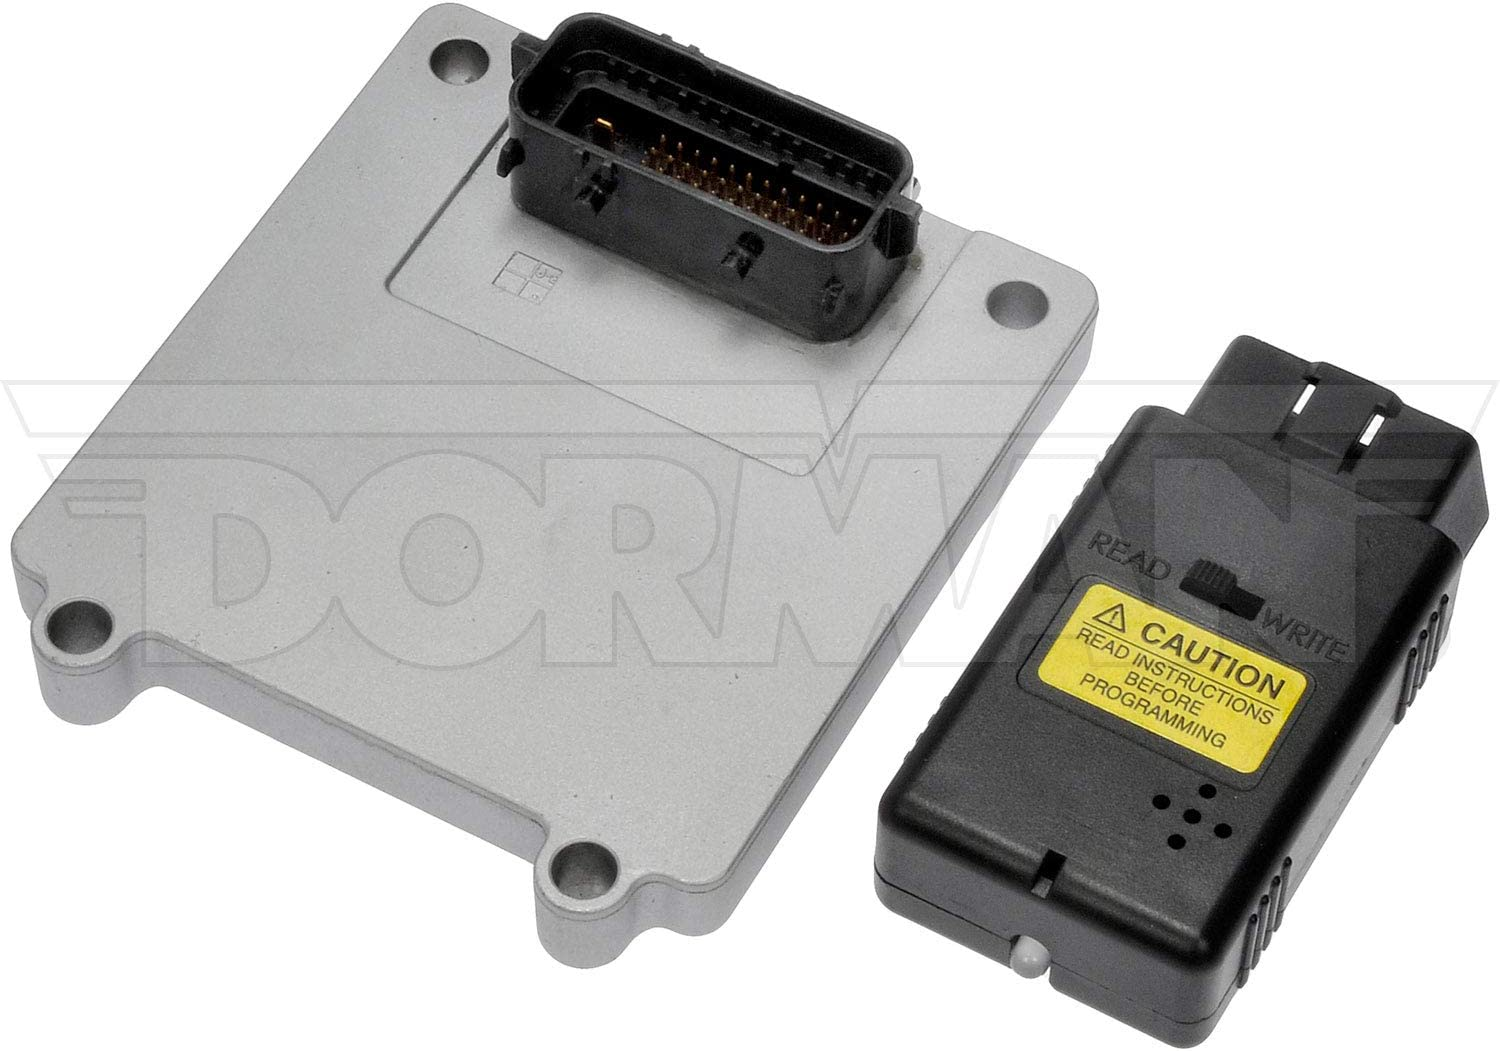 Dorman OE Solutions 599-120 Remanufactured Transmission Control Module